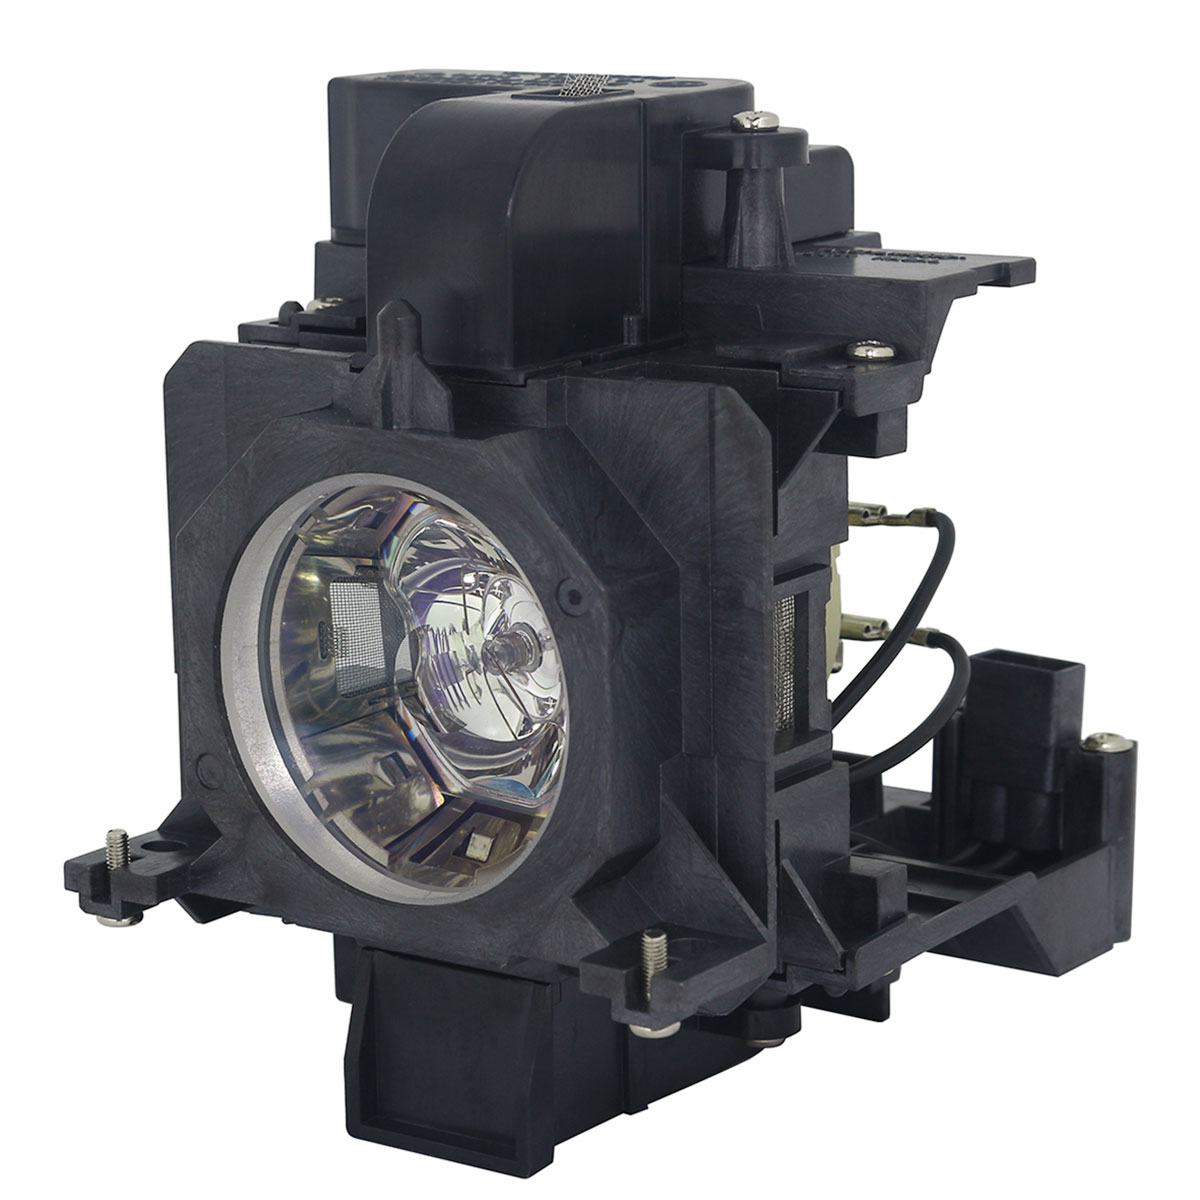 Expert Lamps Panasonic PT-EW530 Replacement Lamp and Housing Assembly with High Quality Genuine Original Philips Bulb Inside